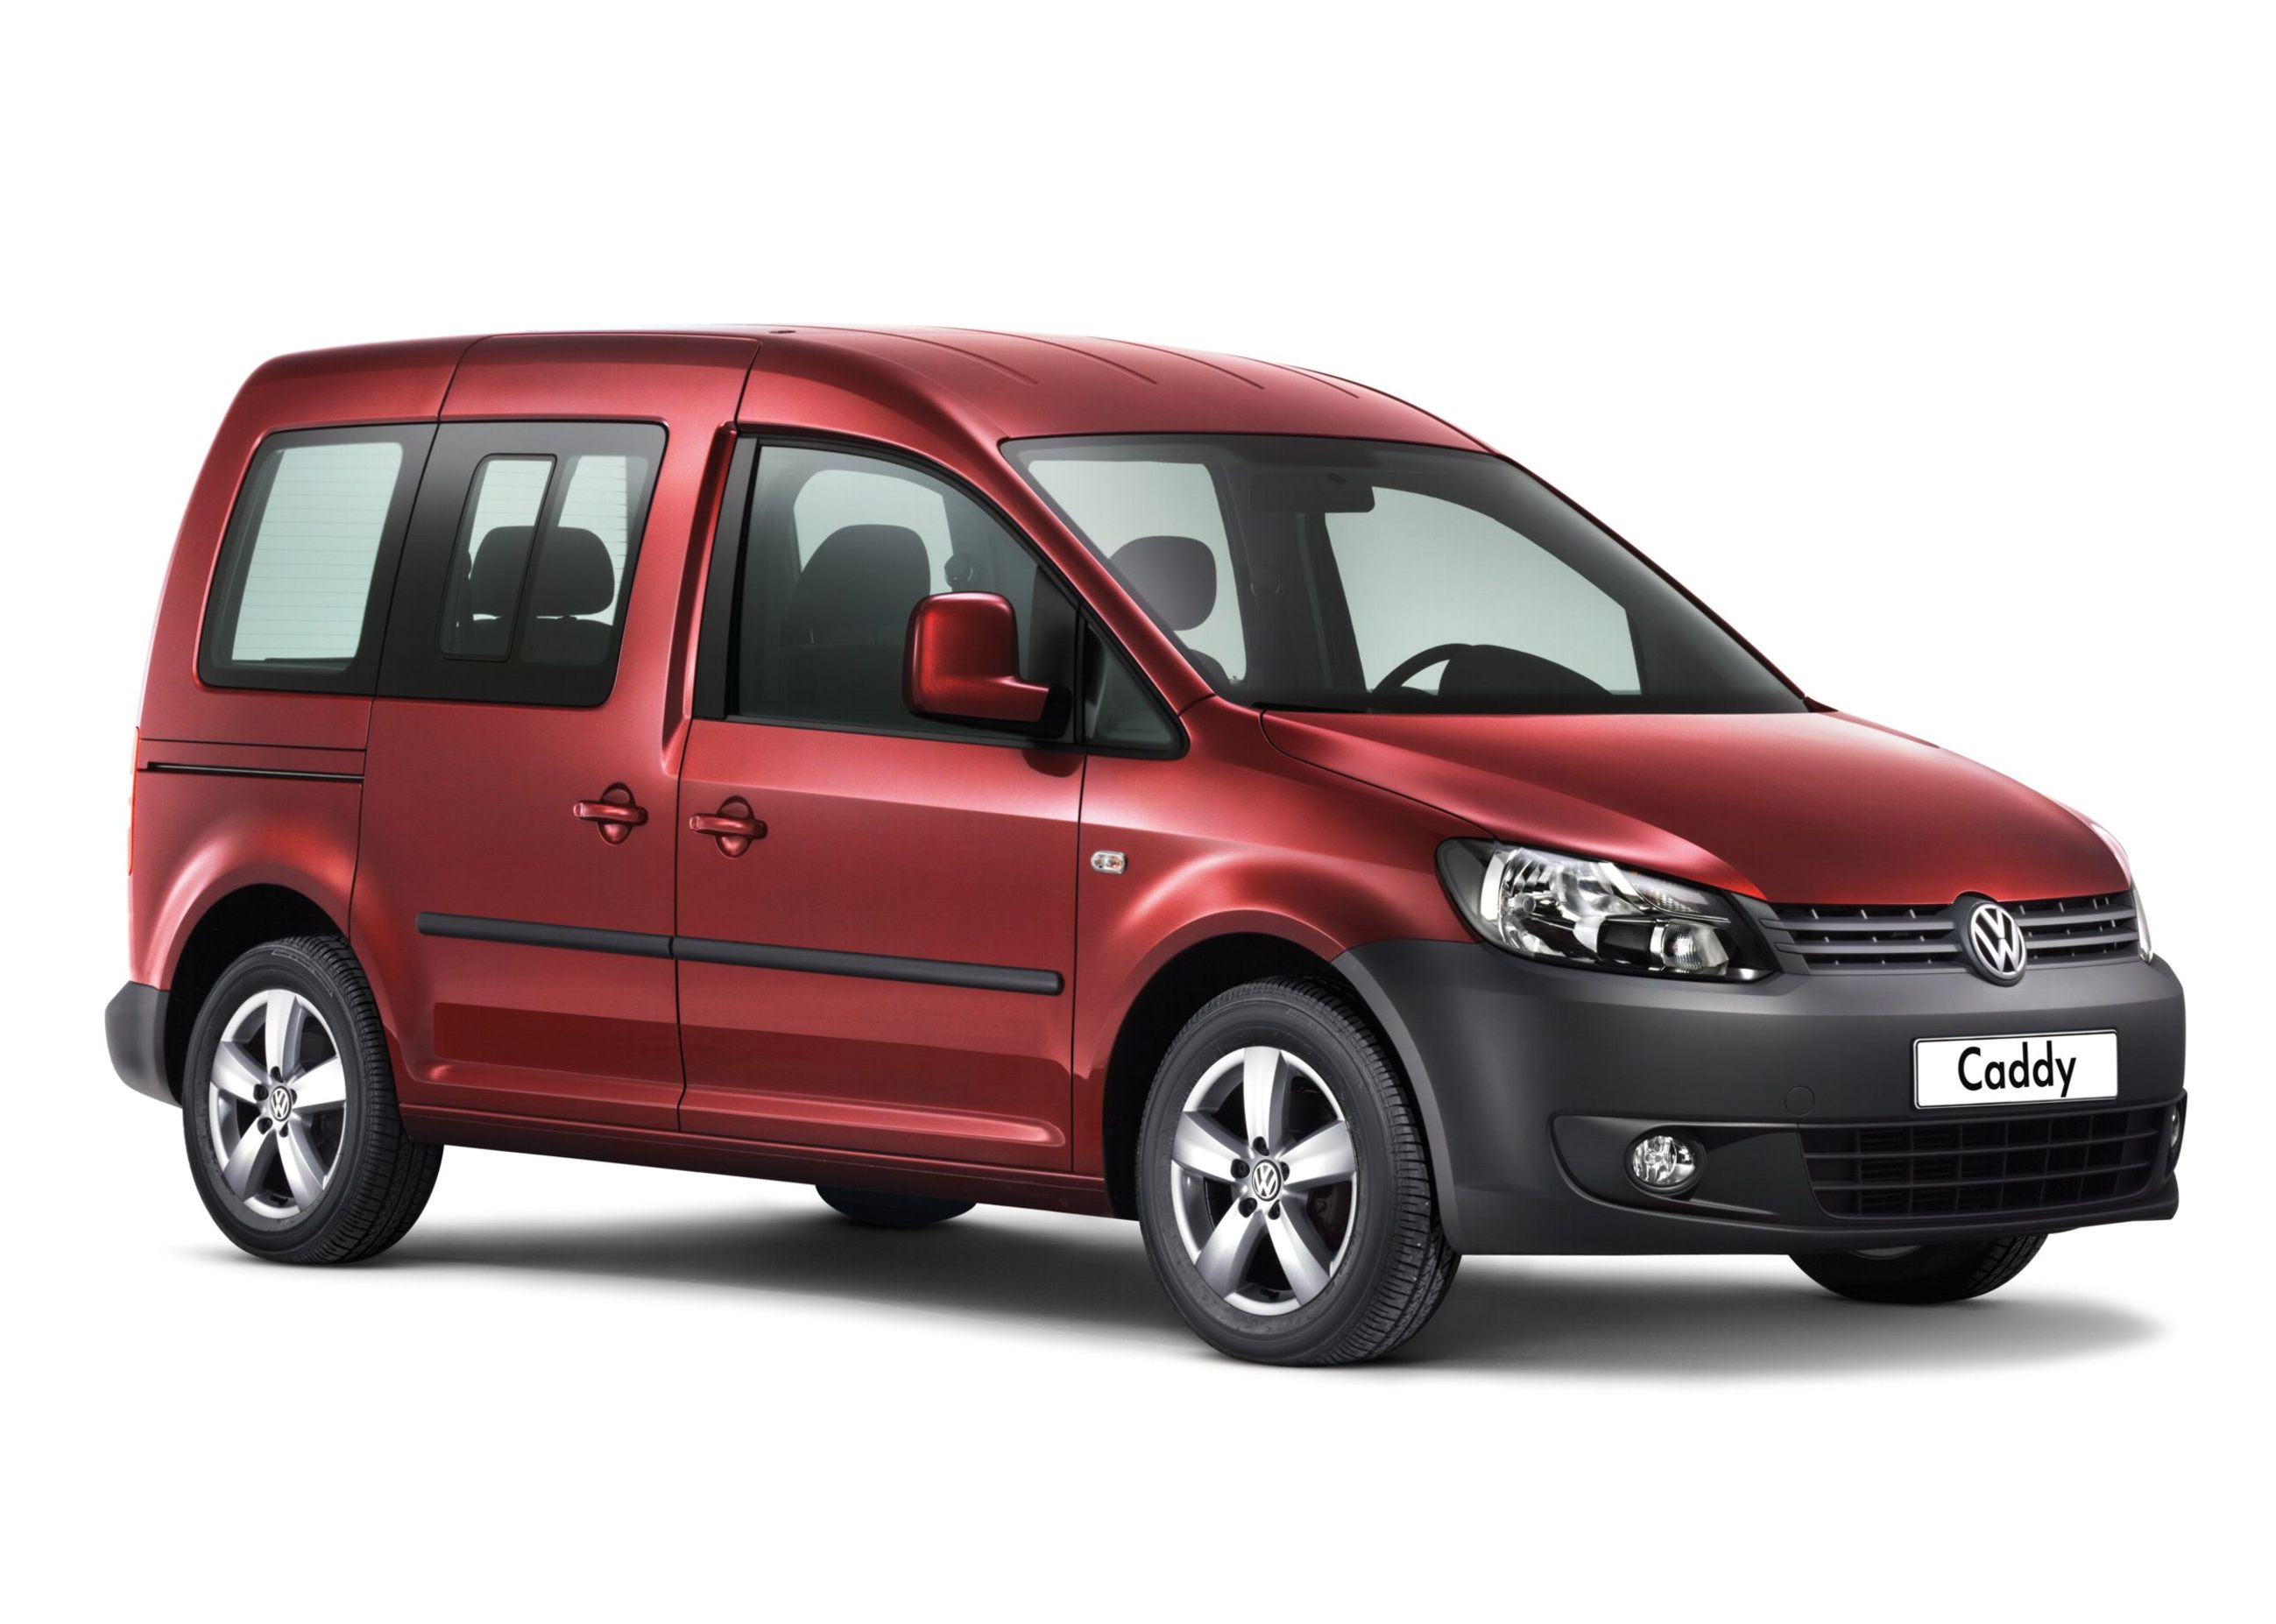 Volkswagen Caddy #21